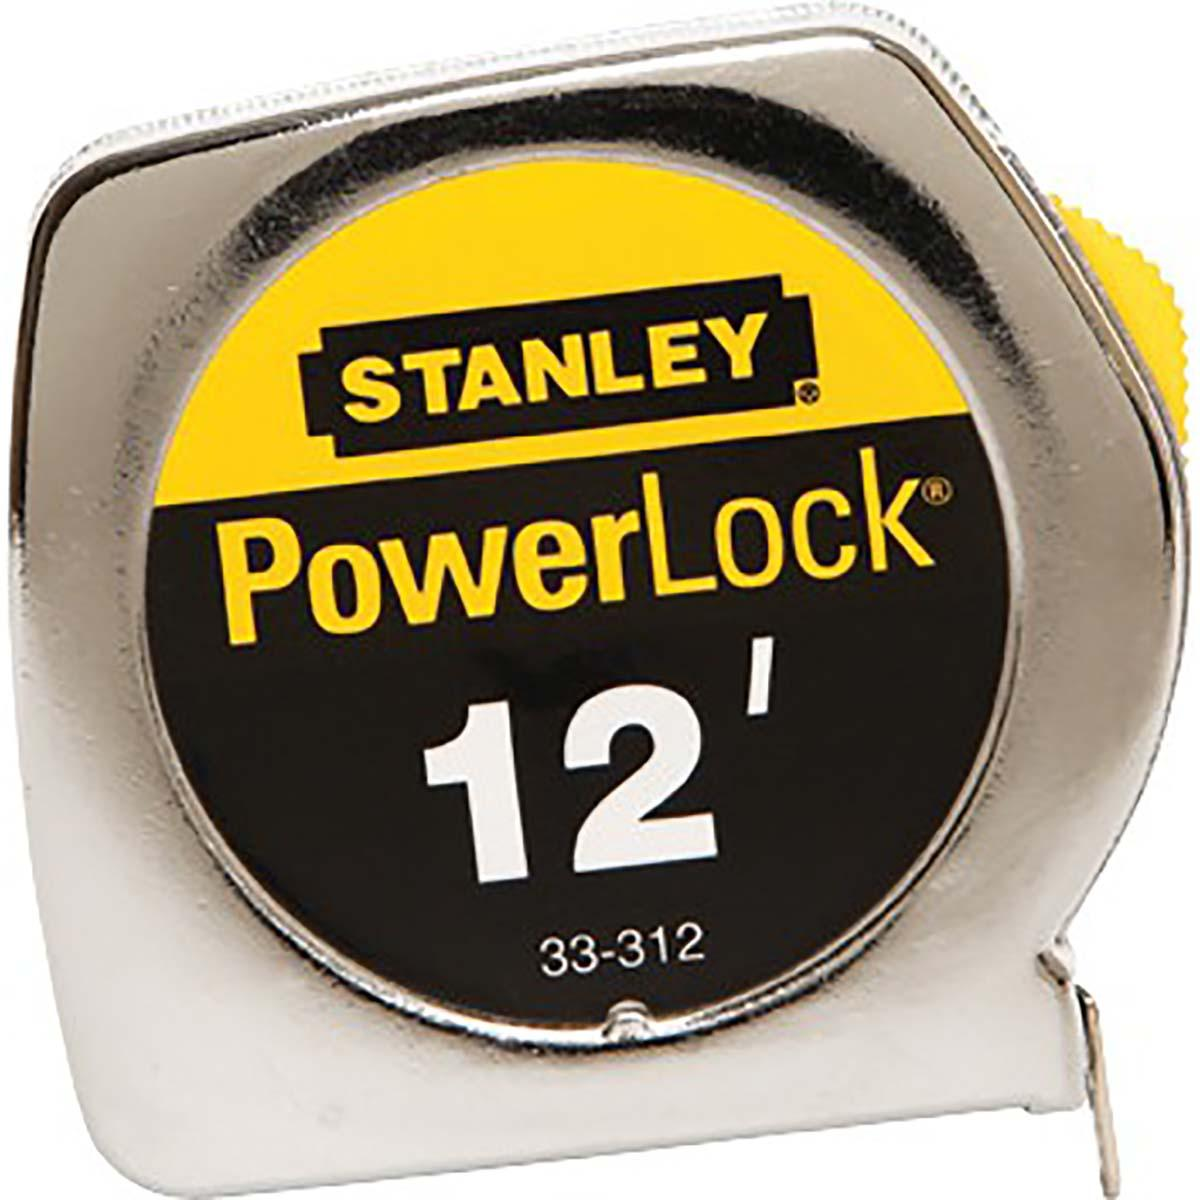 "STANLEY® POWERLOCK® TAPE RULE W/ METAL CASE 3/4"" X 12'"